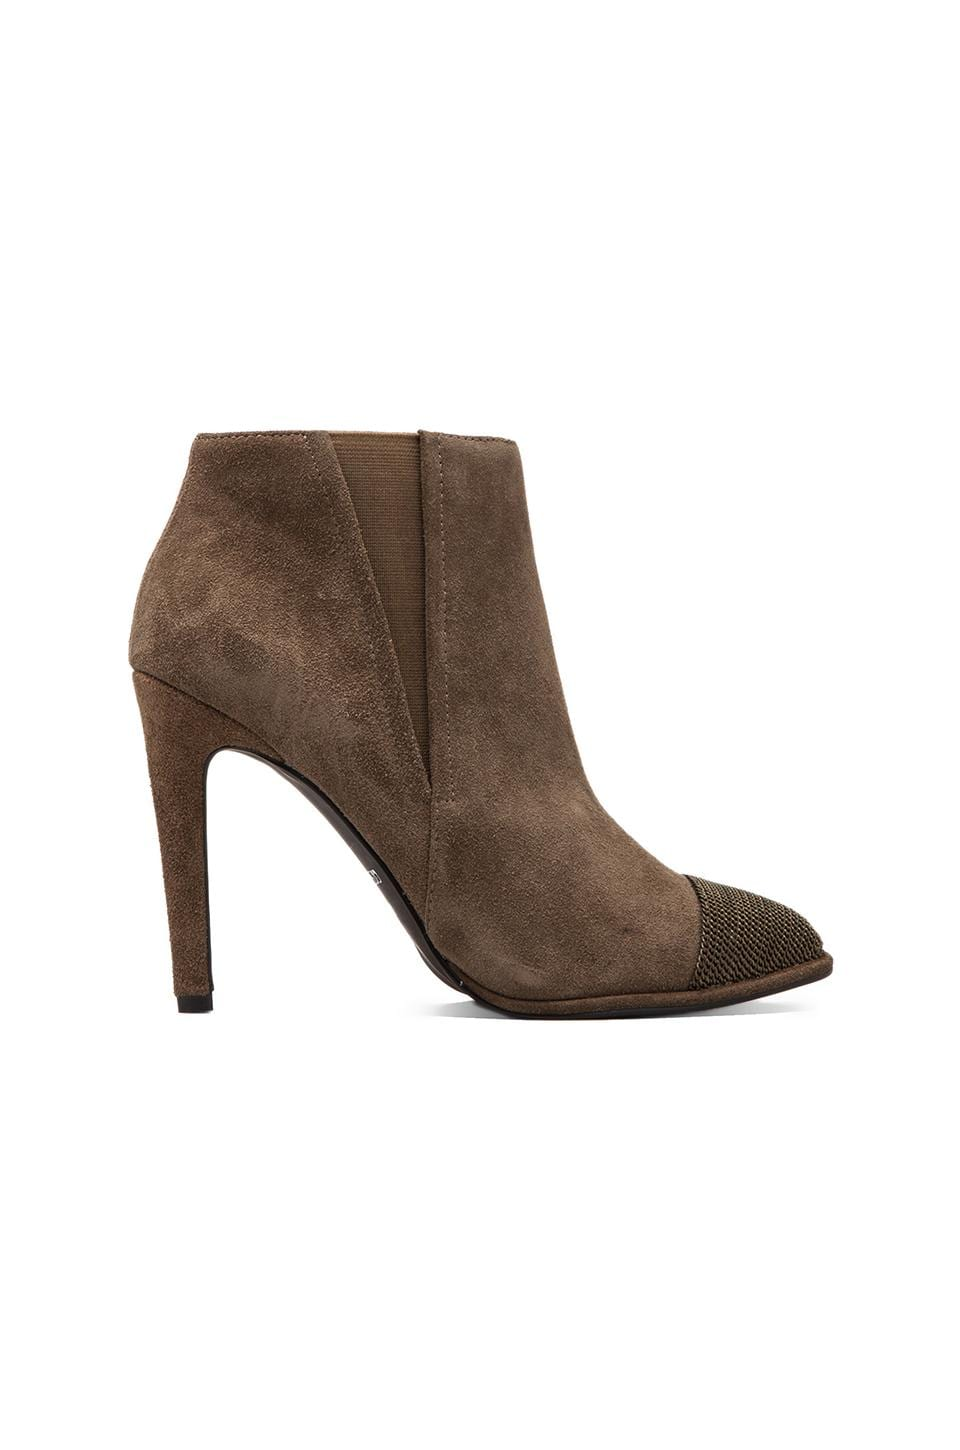 Joe's Jeans Jenny Bootie in Taupe